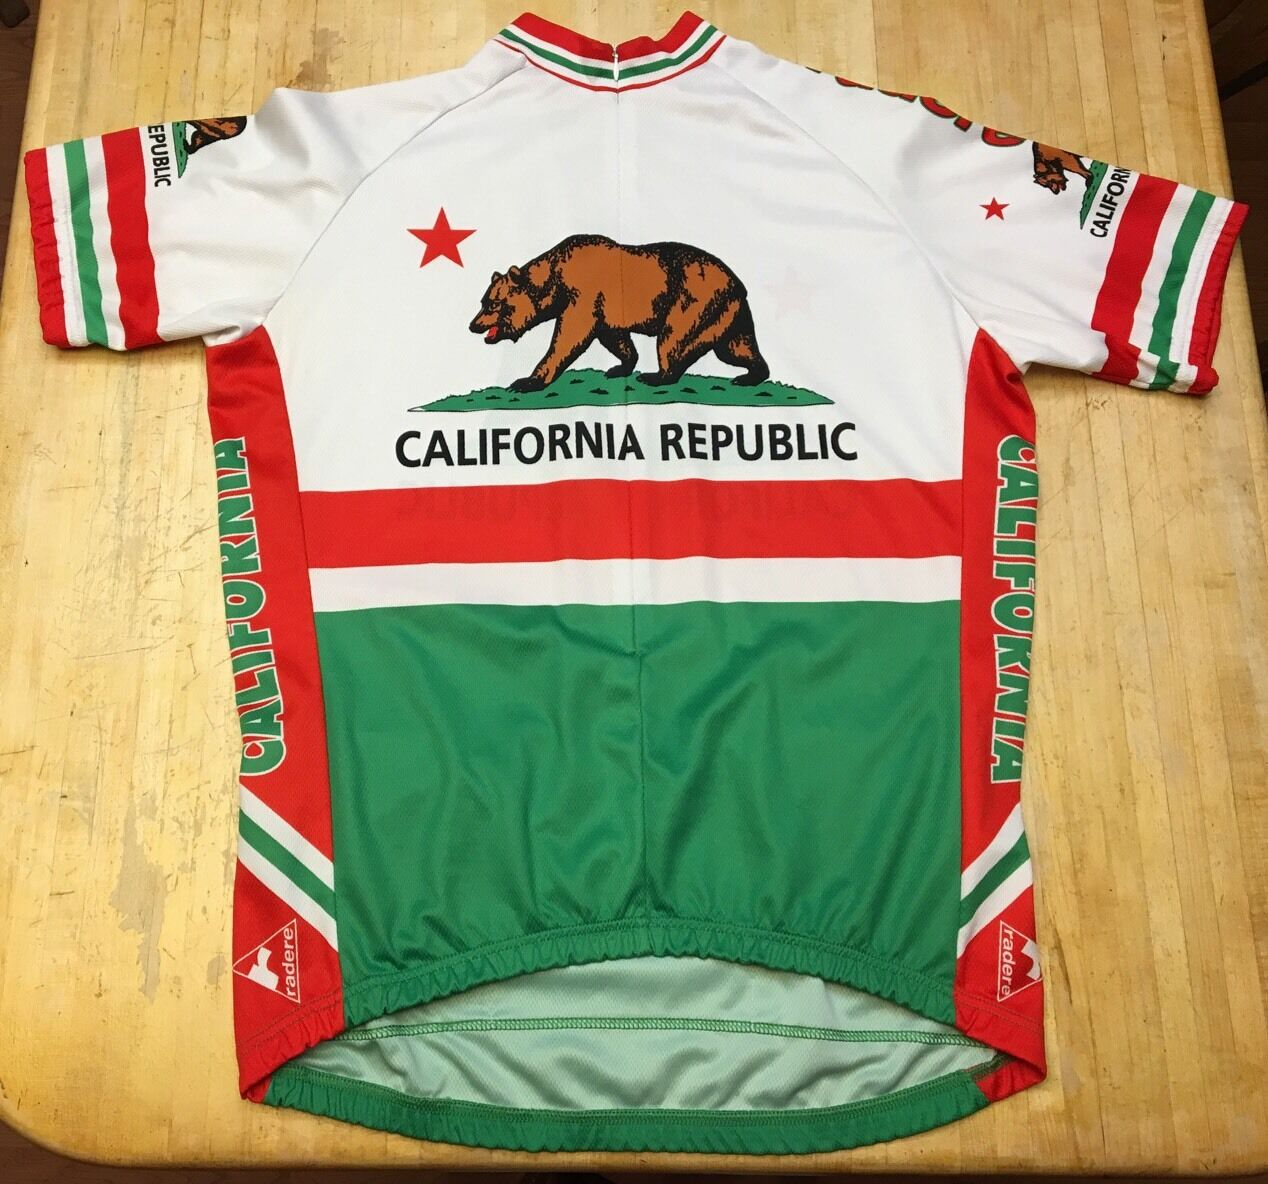 Unisex Flag Radere California Republic Flag Unisex Short Sleeve Cycling Jersey 2XL 20d9a3